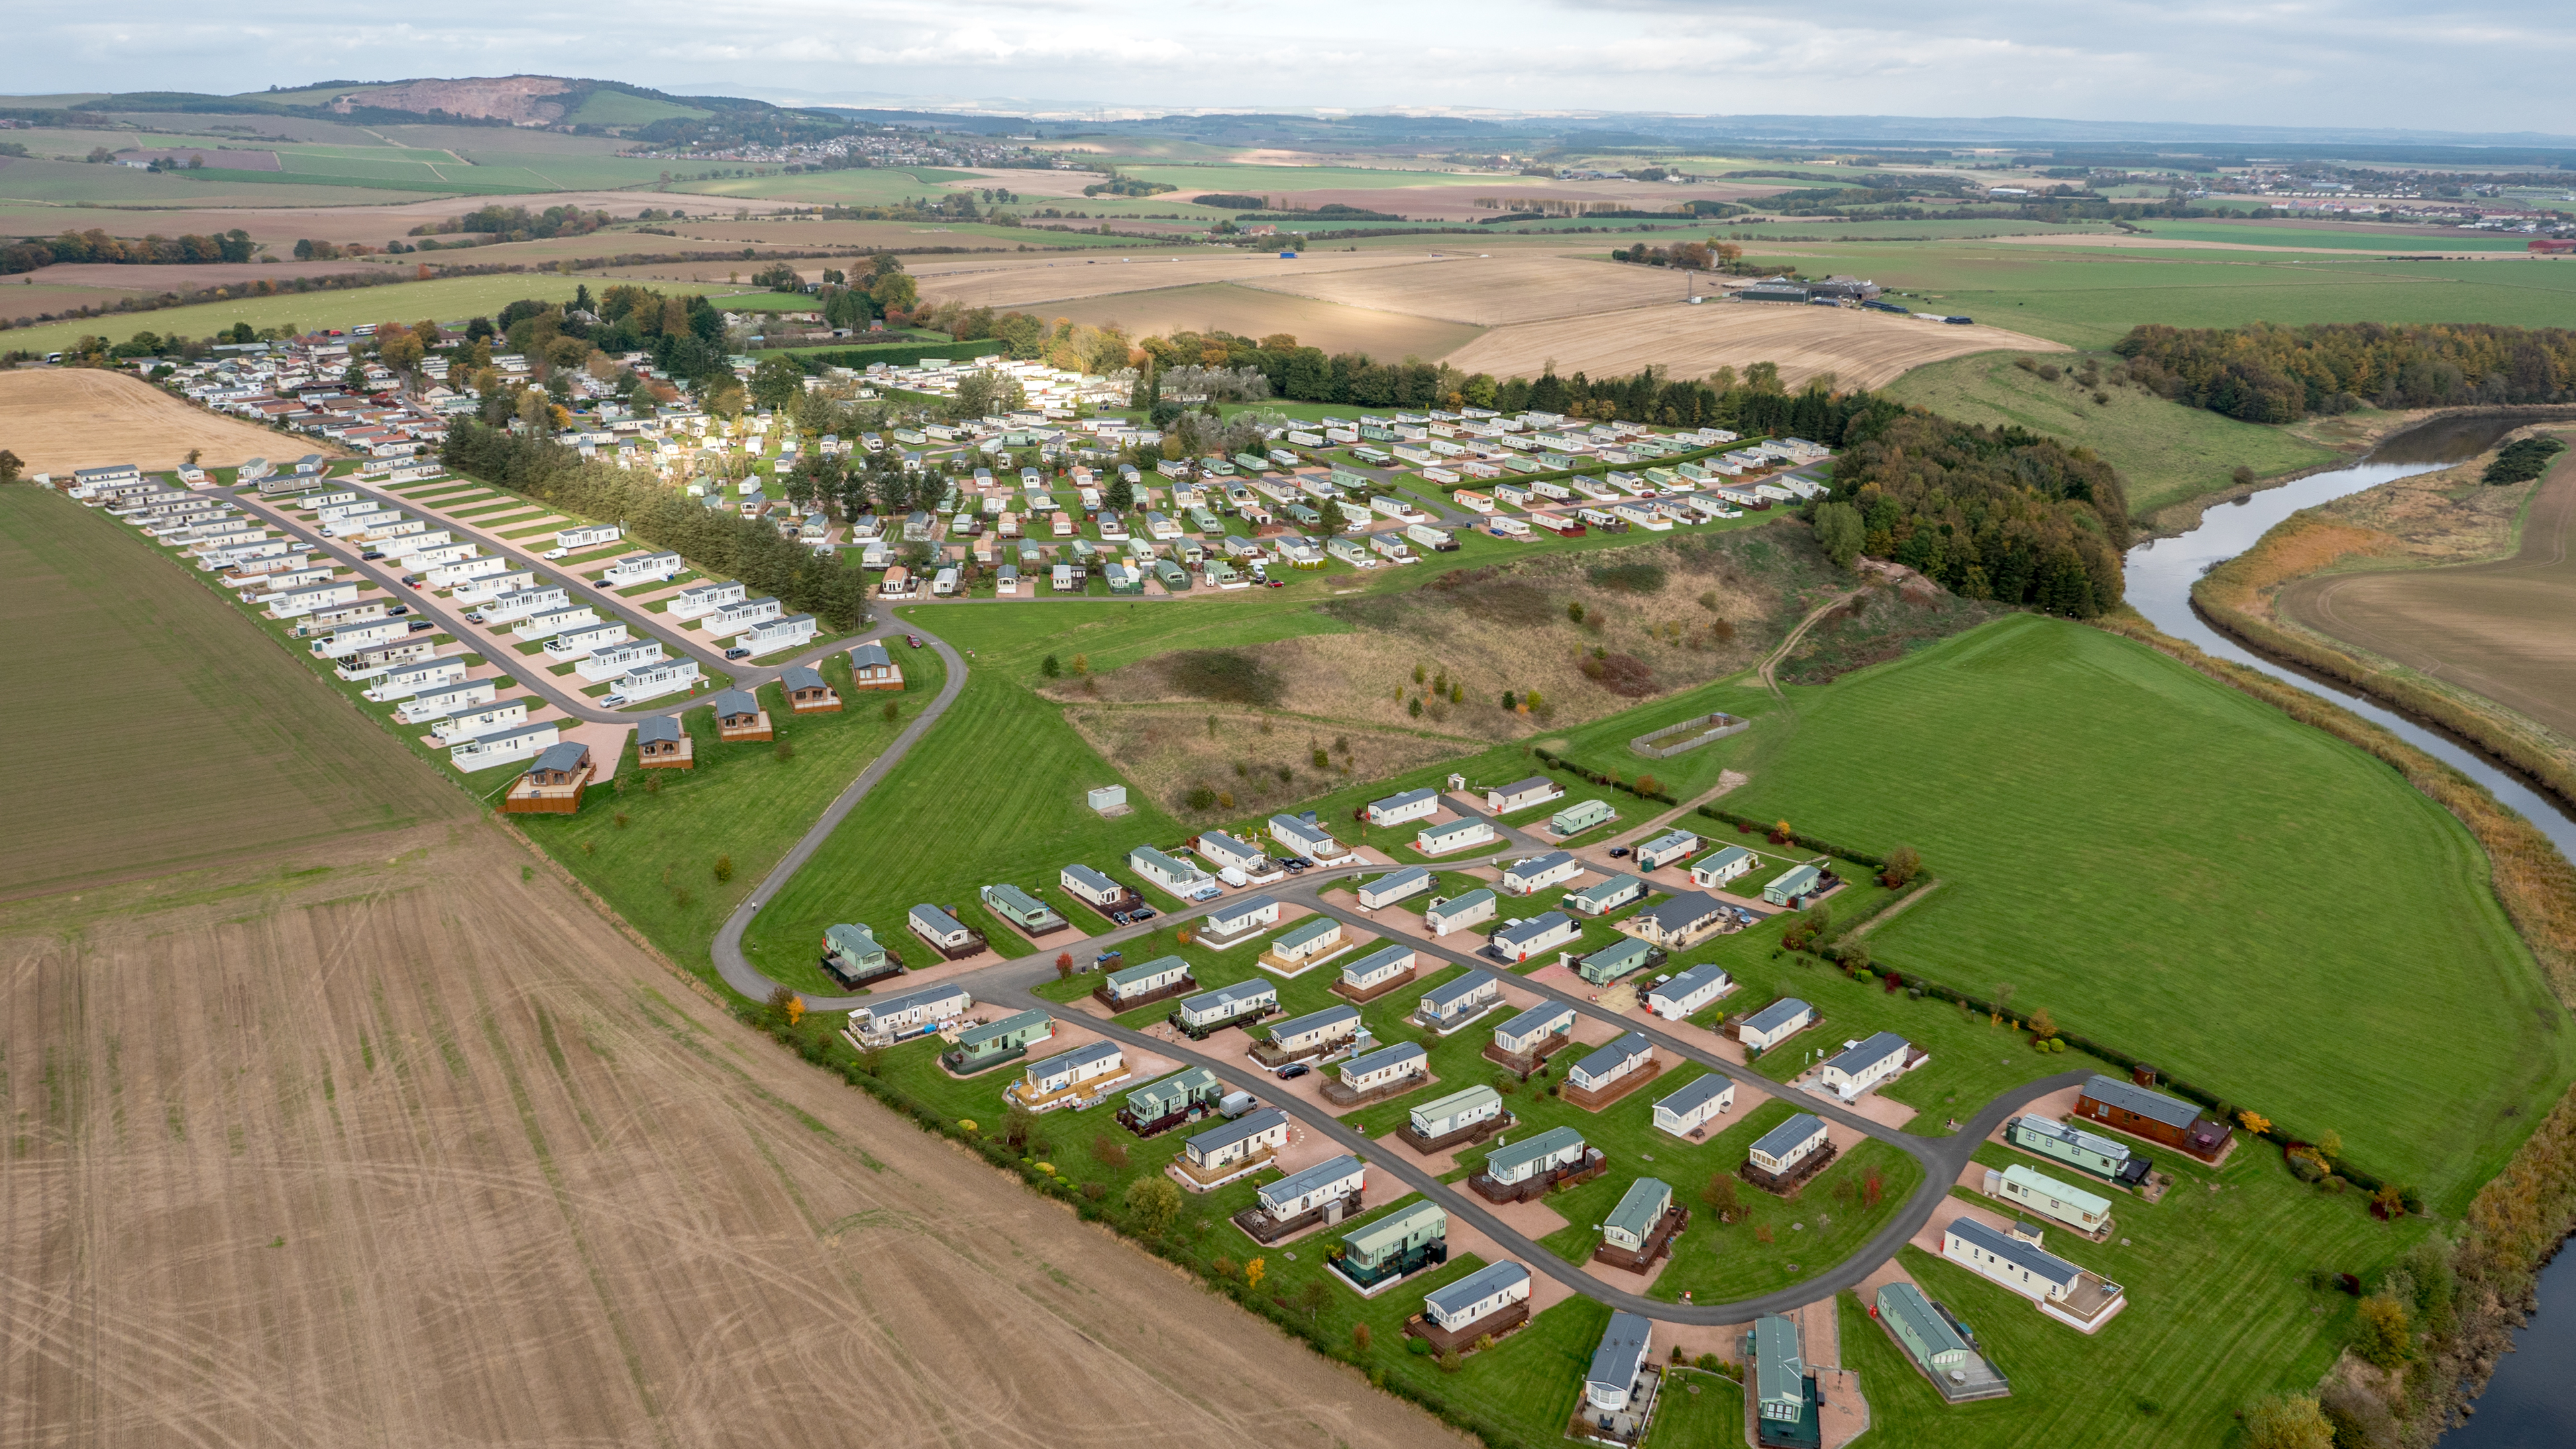 Clayton Caravan Park, situated between Cupar and St Andrews.